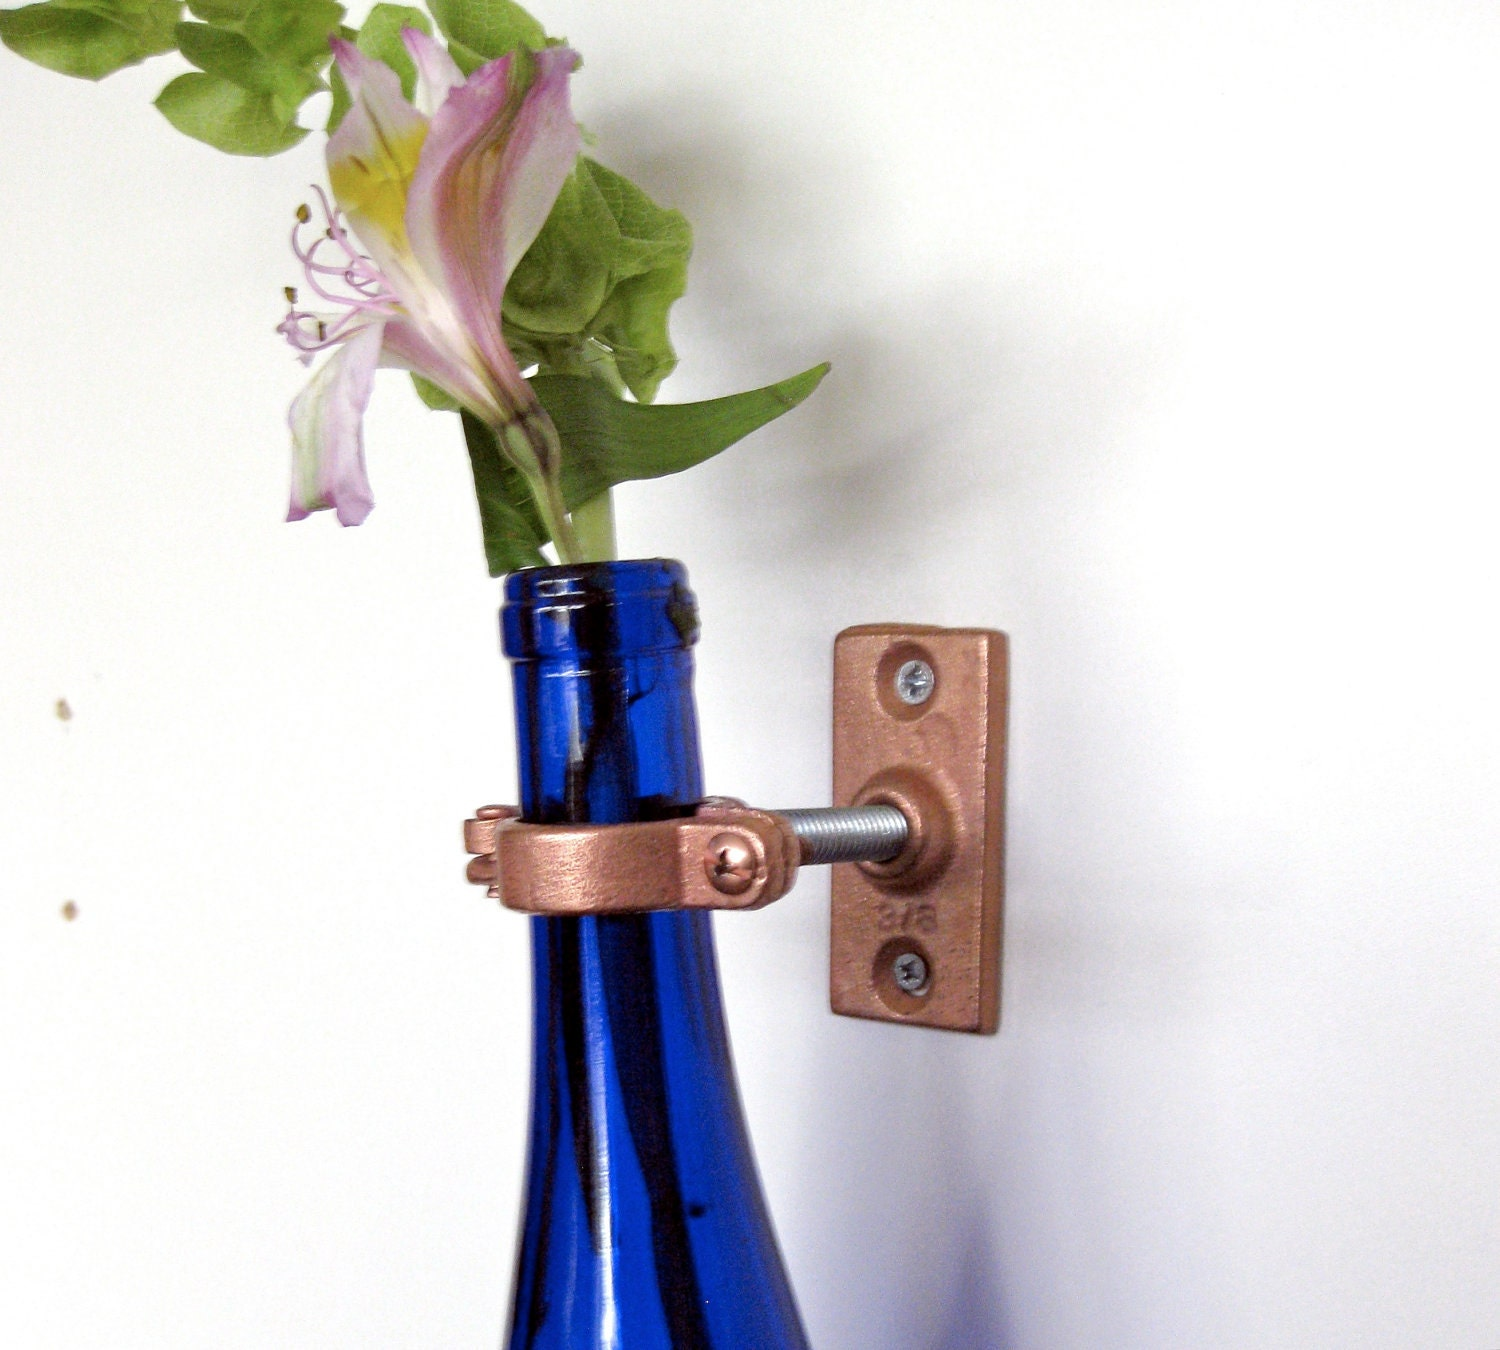 3 cobalt blue wine bottle wall flower vases wall vase check out our oil lamps and tiki torches greatbottlesoffiresy reviewsmspy